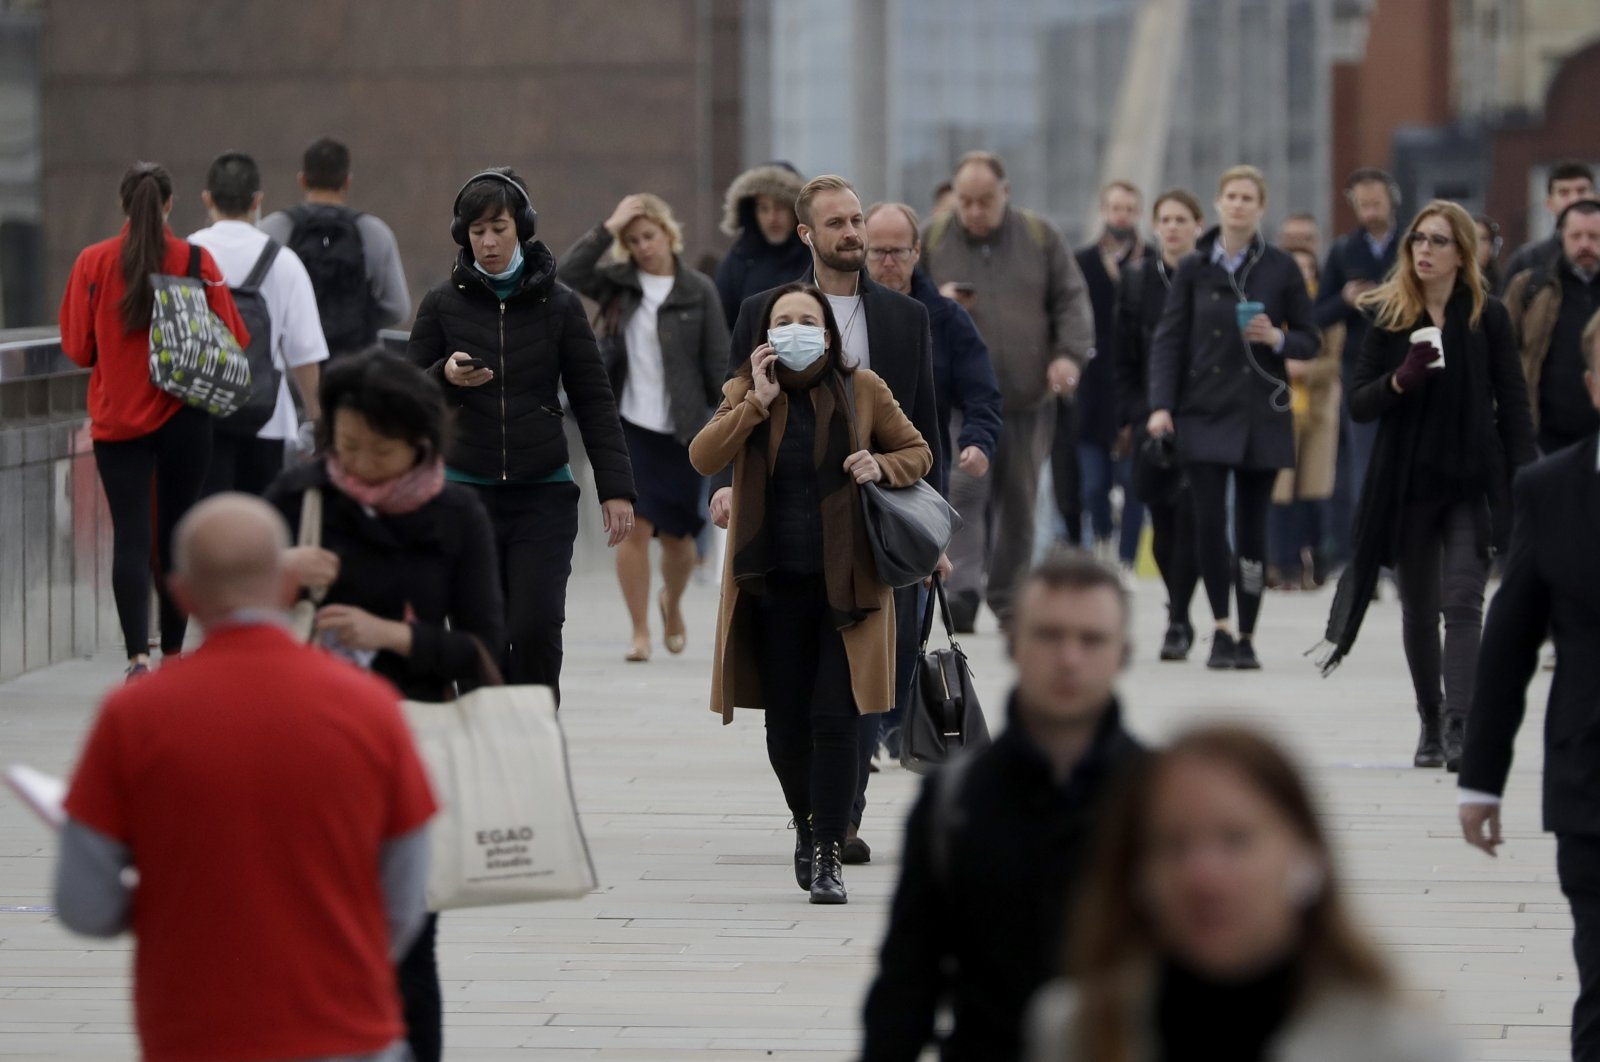 Commuters walk across London Bridge during the morning rush hour toward the offices in London's financial district, Oct. 12, 2020. (AP Photo)